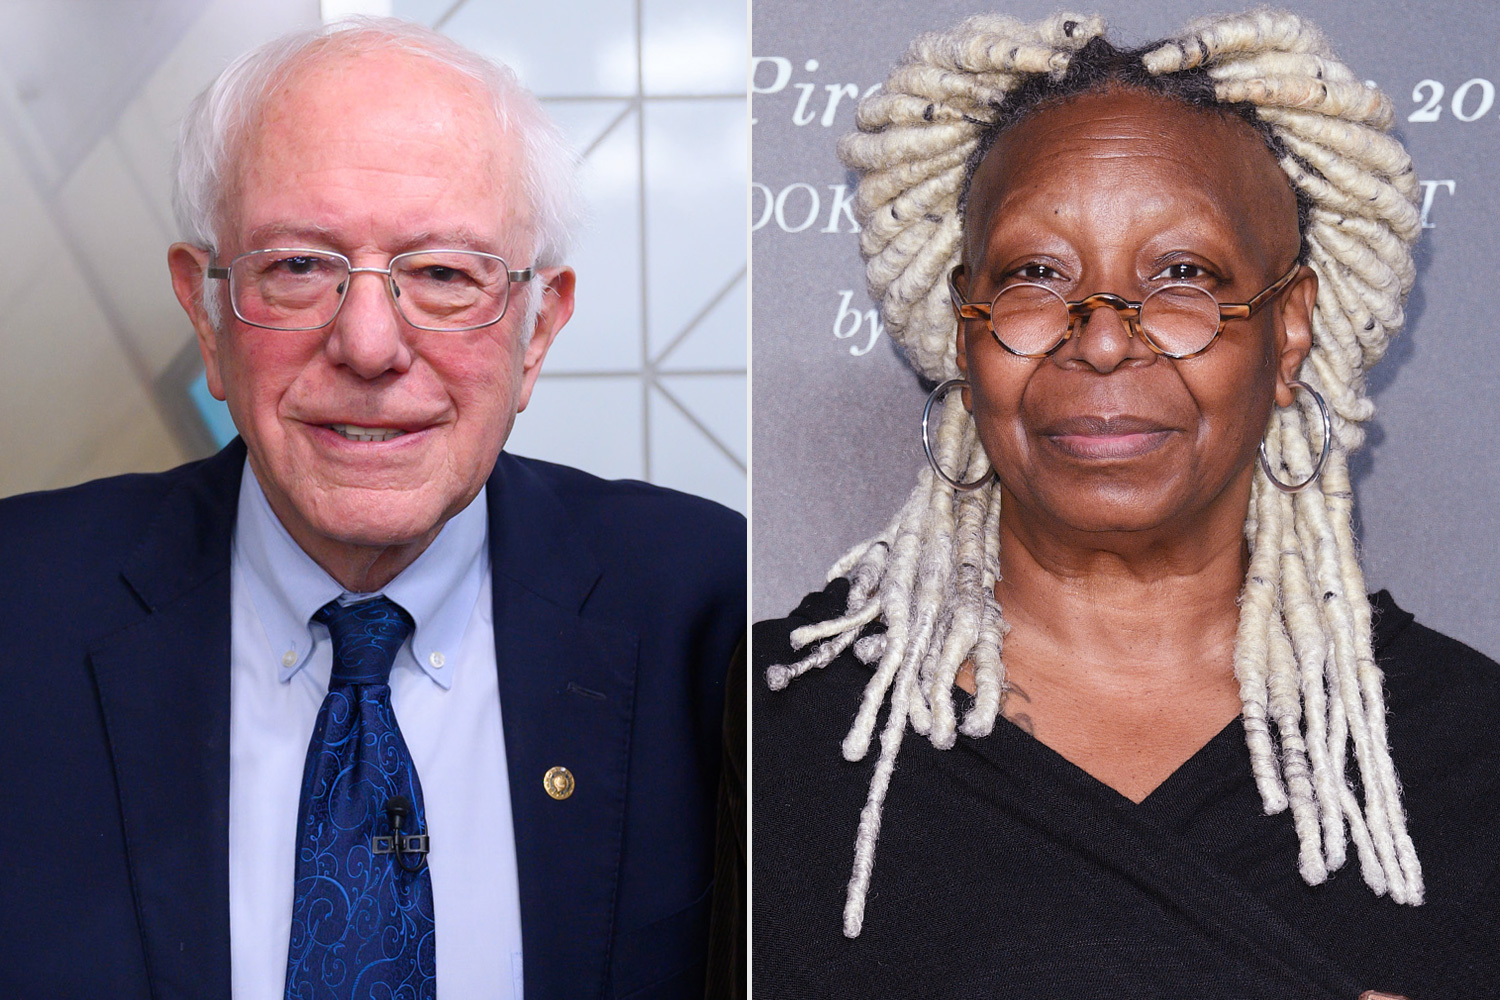 Whoopi Goldberg Pushes Bernie Sanders on His 2020 Plans